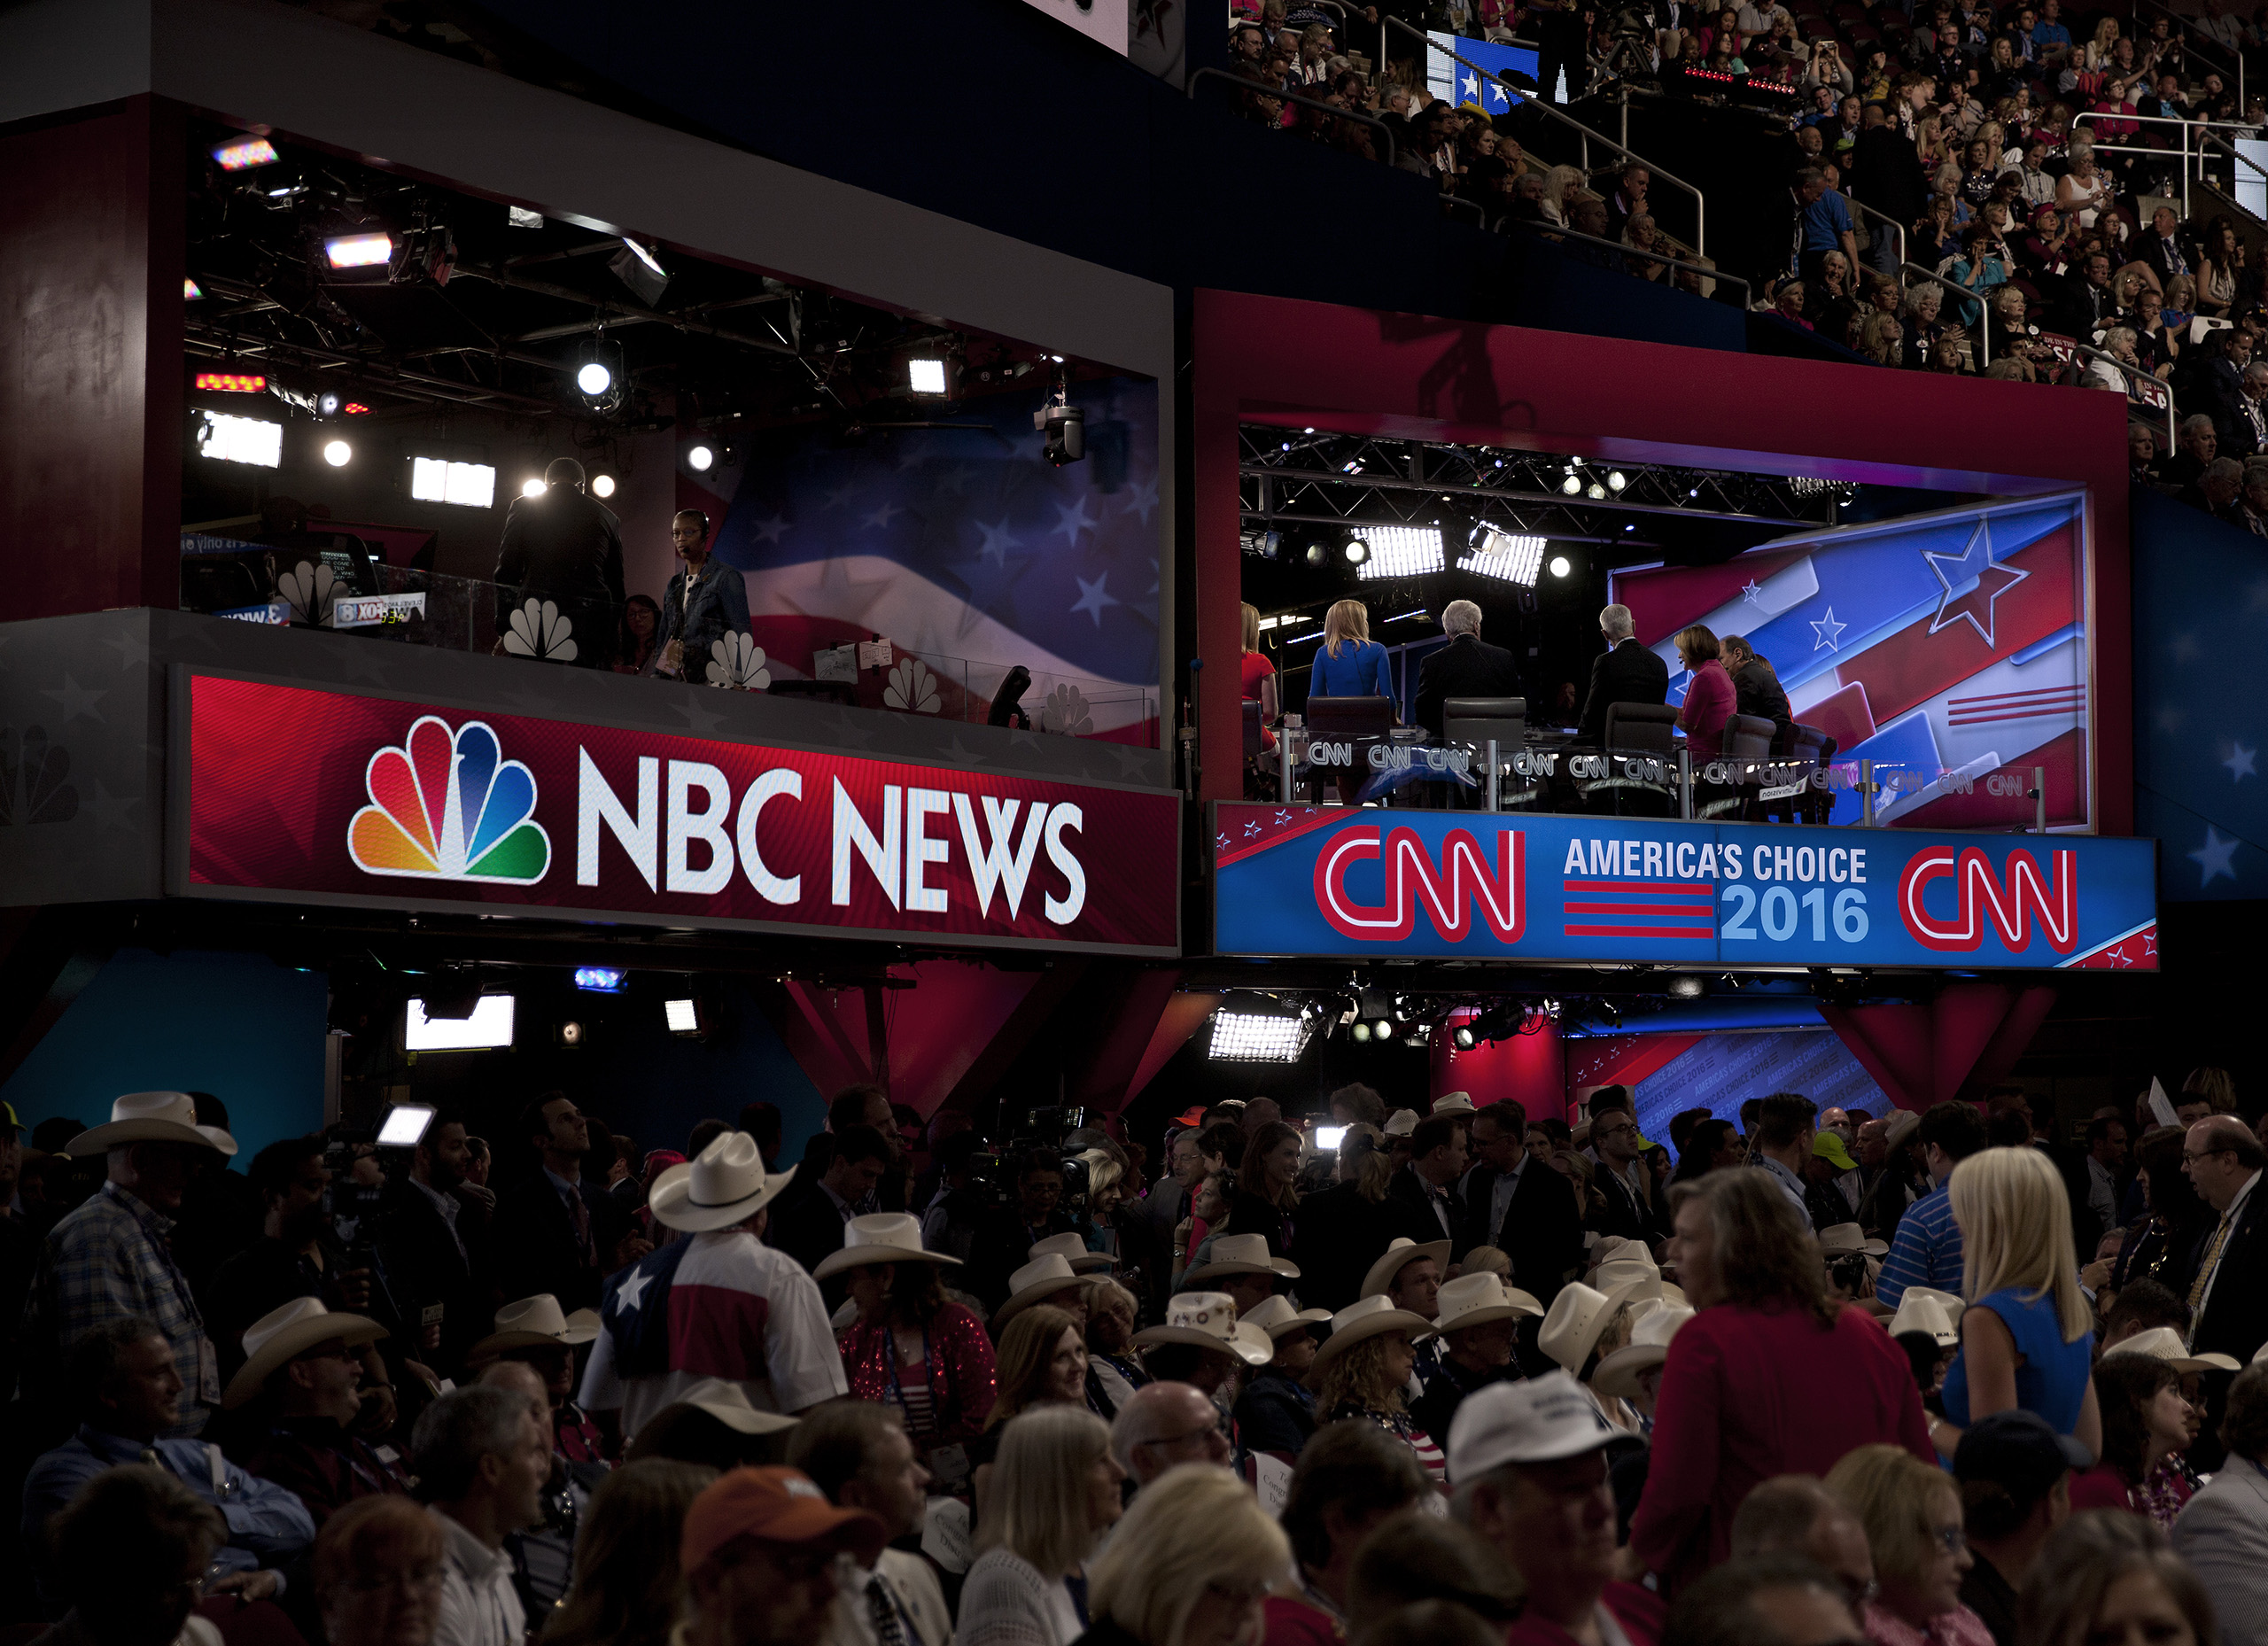 Media at the Republican National Convention on July 20, 2016 at the Quicken Loans Arena in Cleveland.